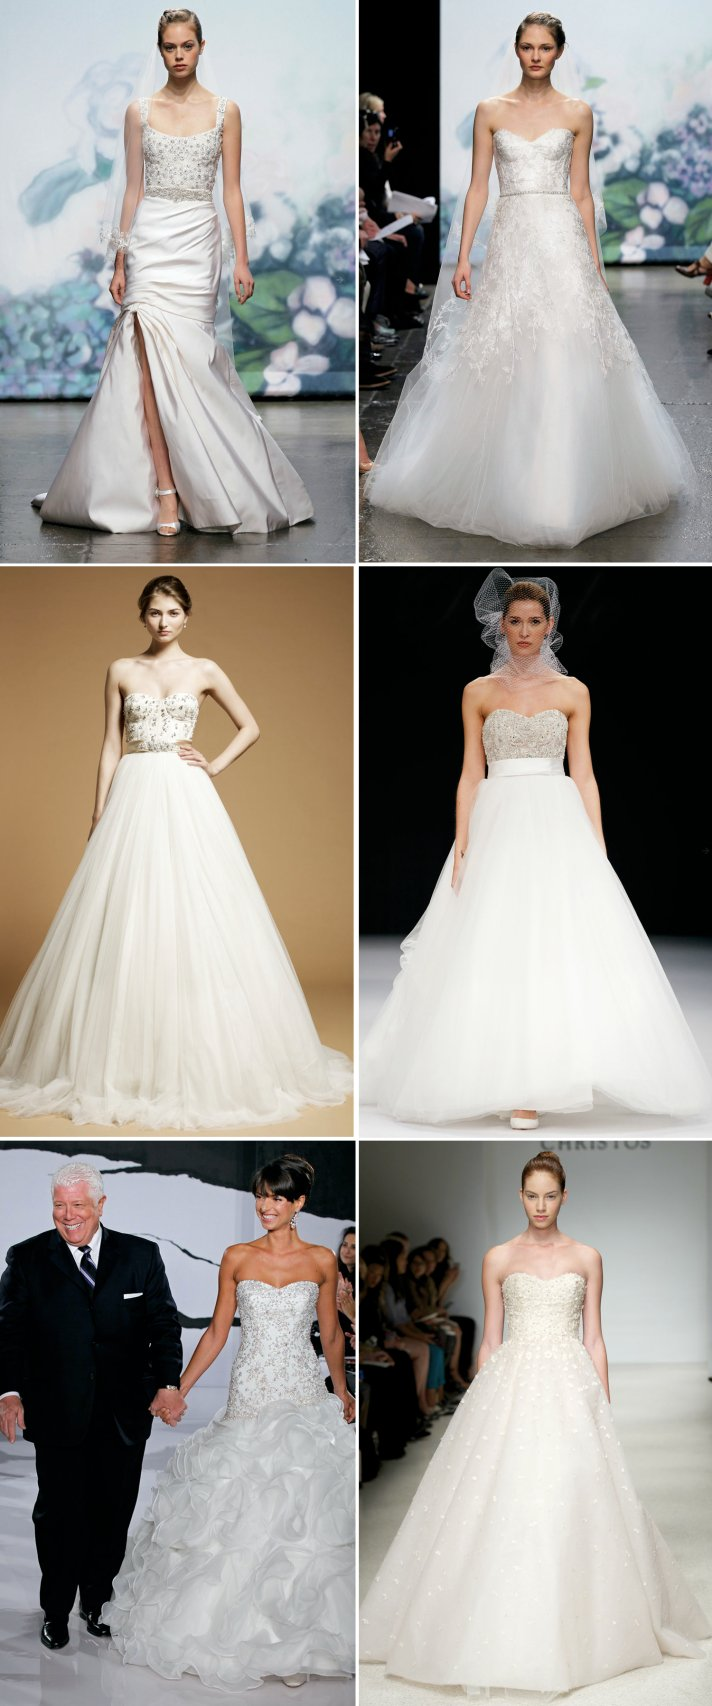 2012 wedding dresses corset bodices mermaid ballgown a line